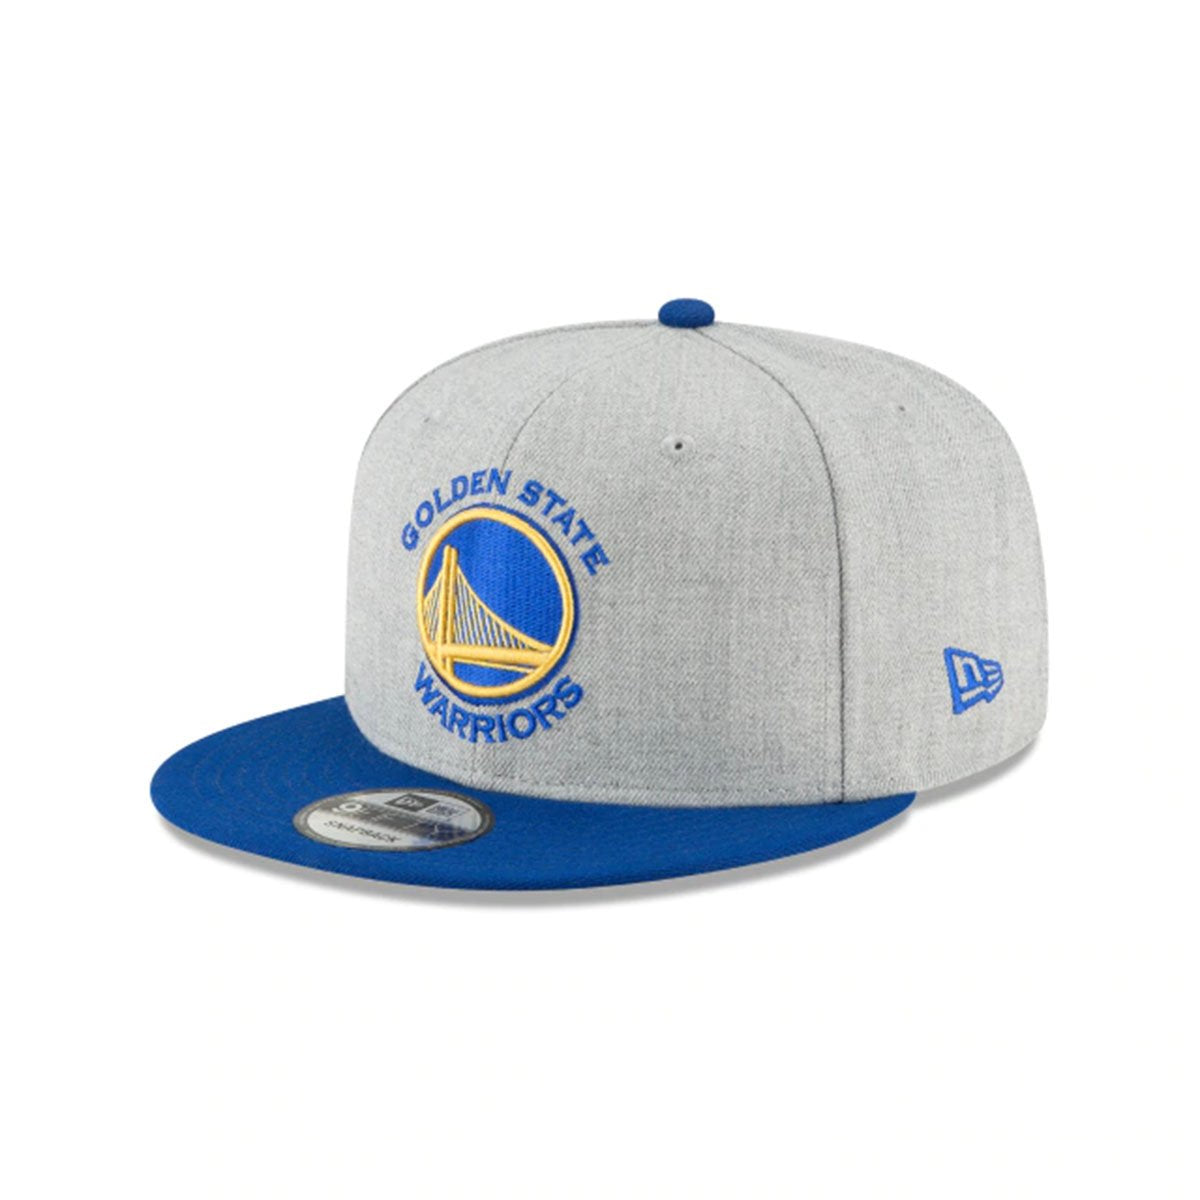 GOLDEN STATE WARRIORS_GRAY/BLUE